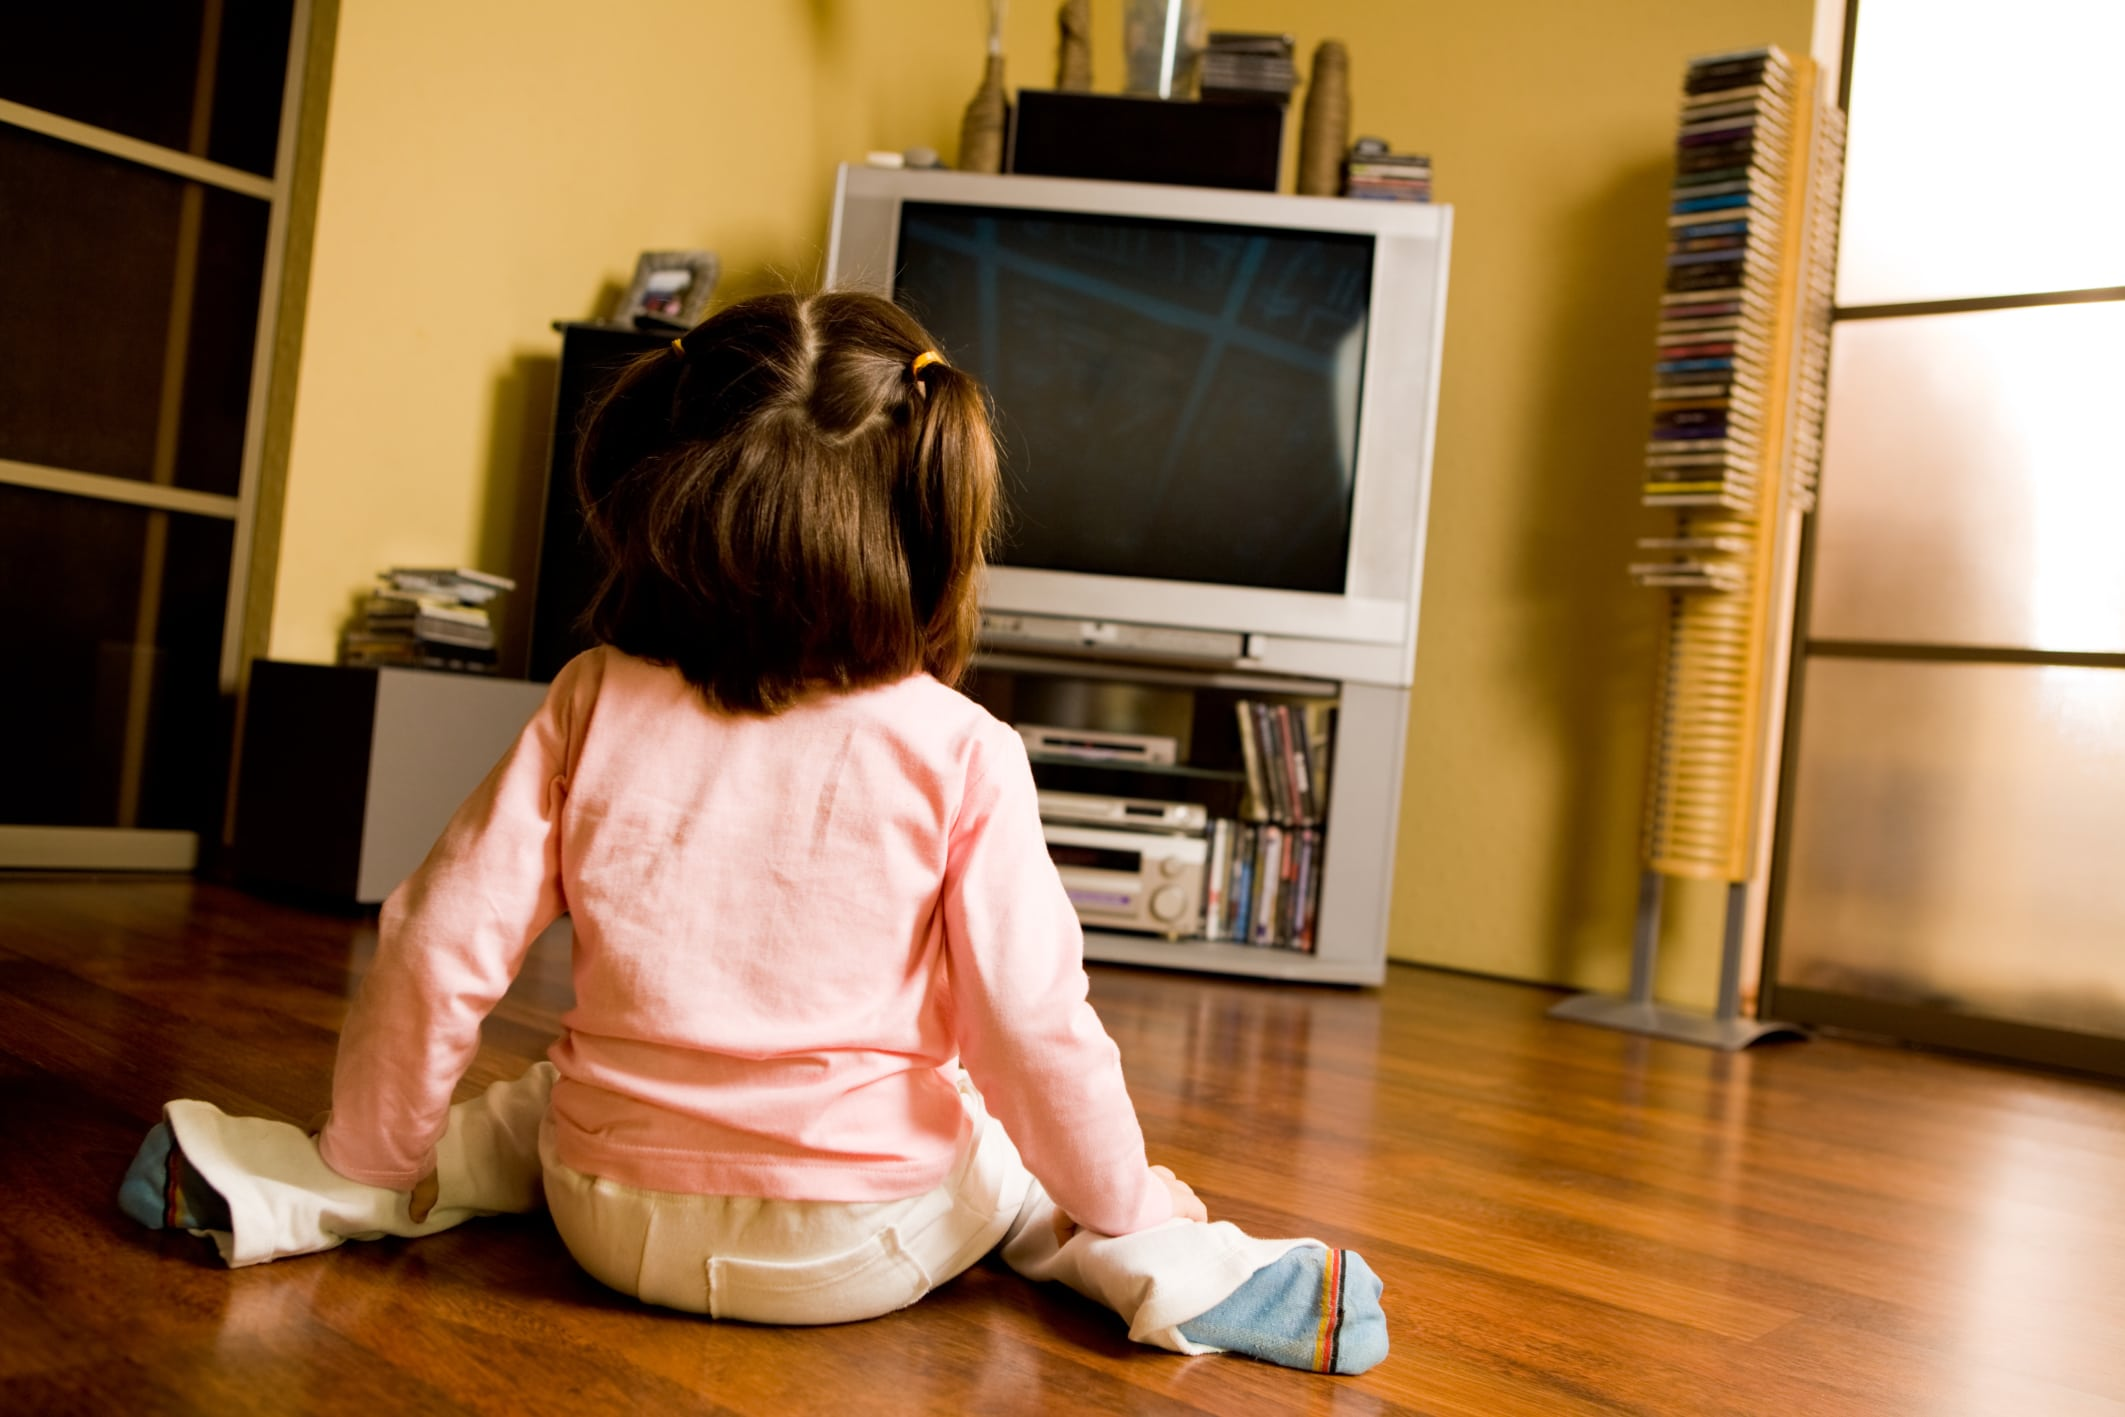 negative effects of tv on family Tv watching is associated with bullying and lowered overall math achievement negative effects of tv could be symptoms of broader family and household dynamics.